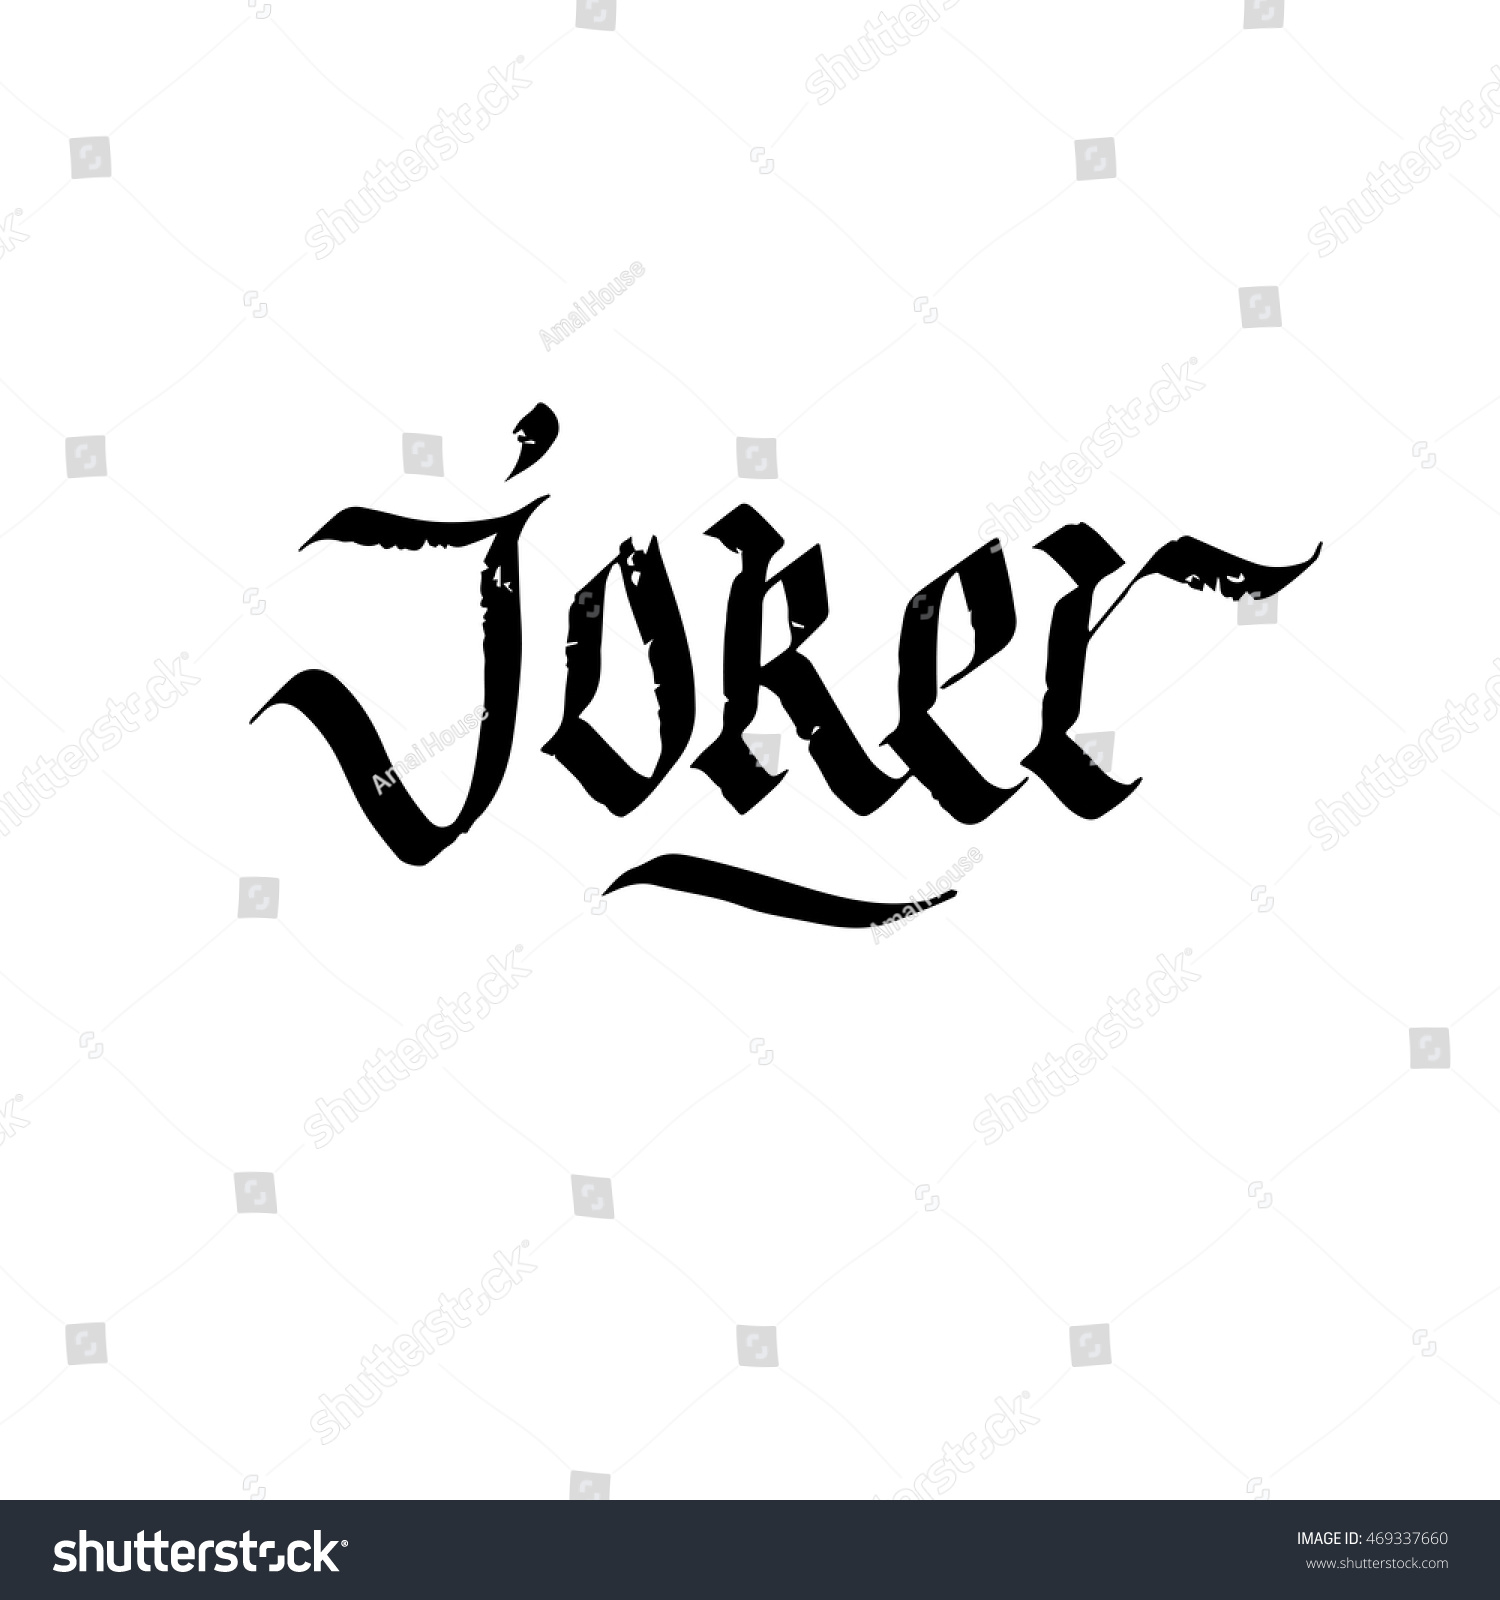 Joker sign ink hand lettering modern stock vector Calligraphy and sign